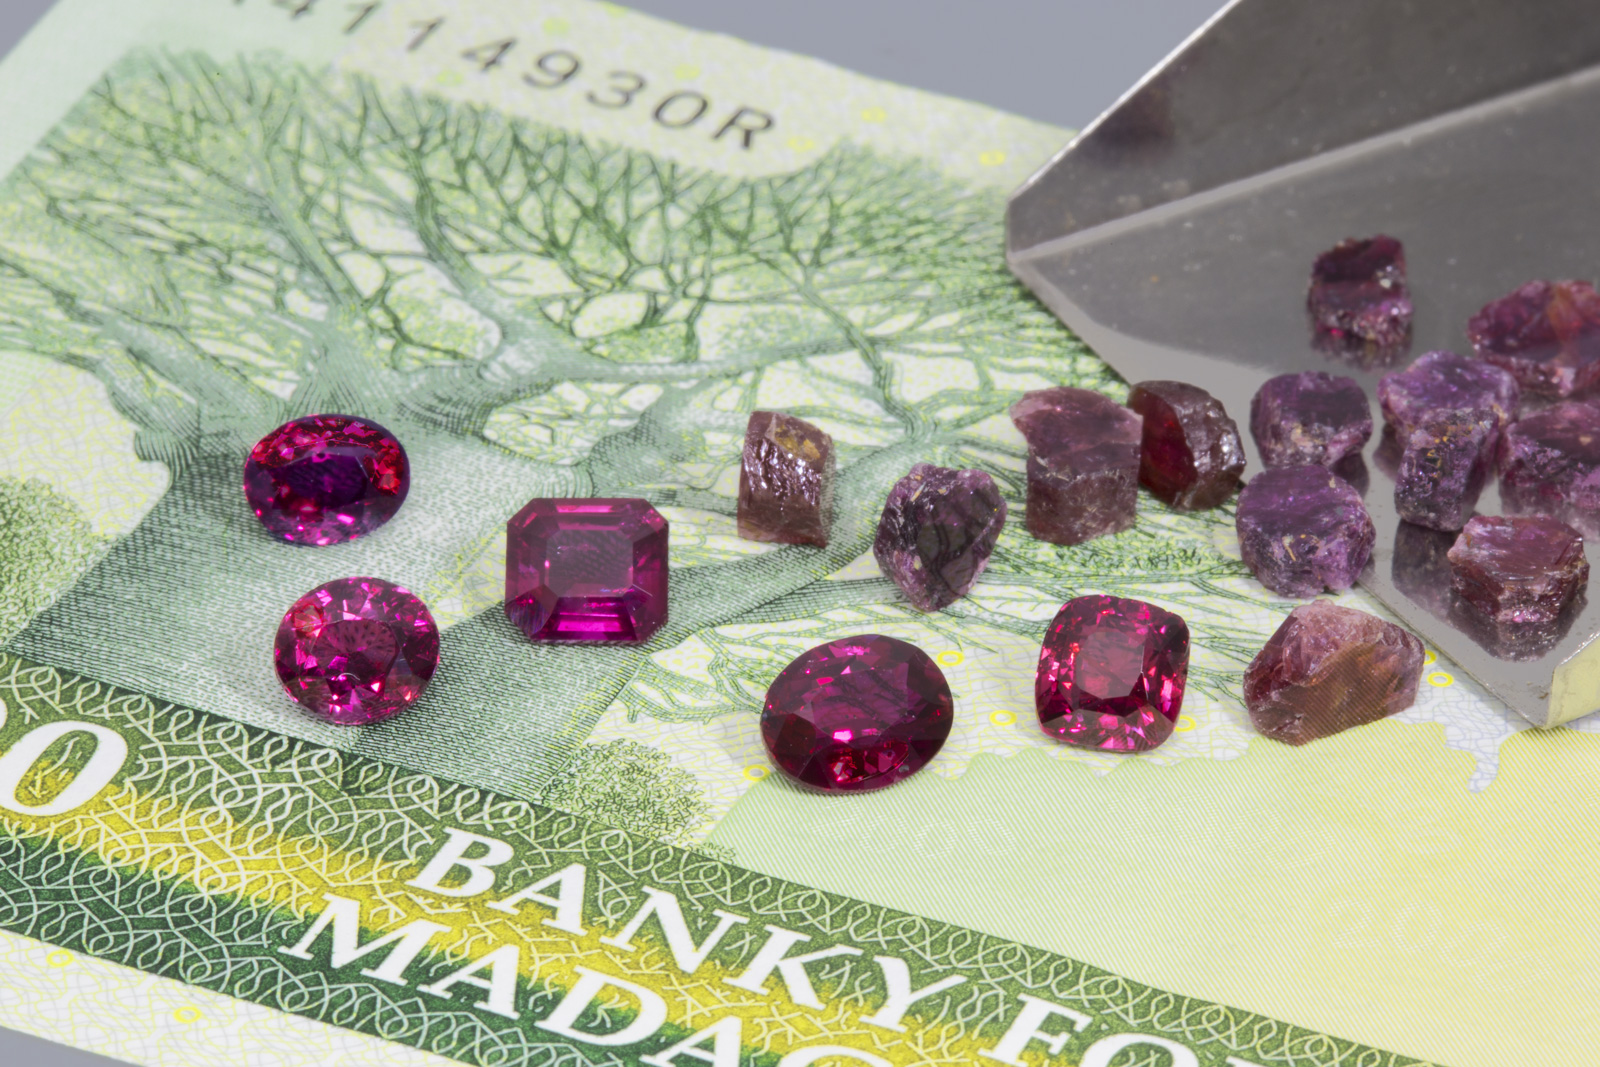 Faceted Madagasar rubies from the 2015 find, along with rough rubies from Moramanga collected by the author in 2005. The faceted stones are between 1.2 and 1.3 ct each. Photo: Wimon Manorotkul/Lotus Gemology.